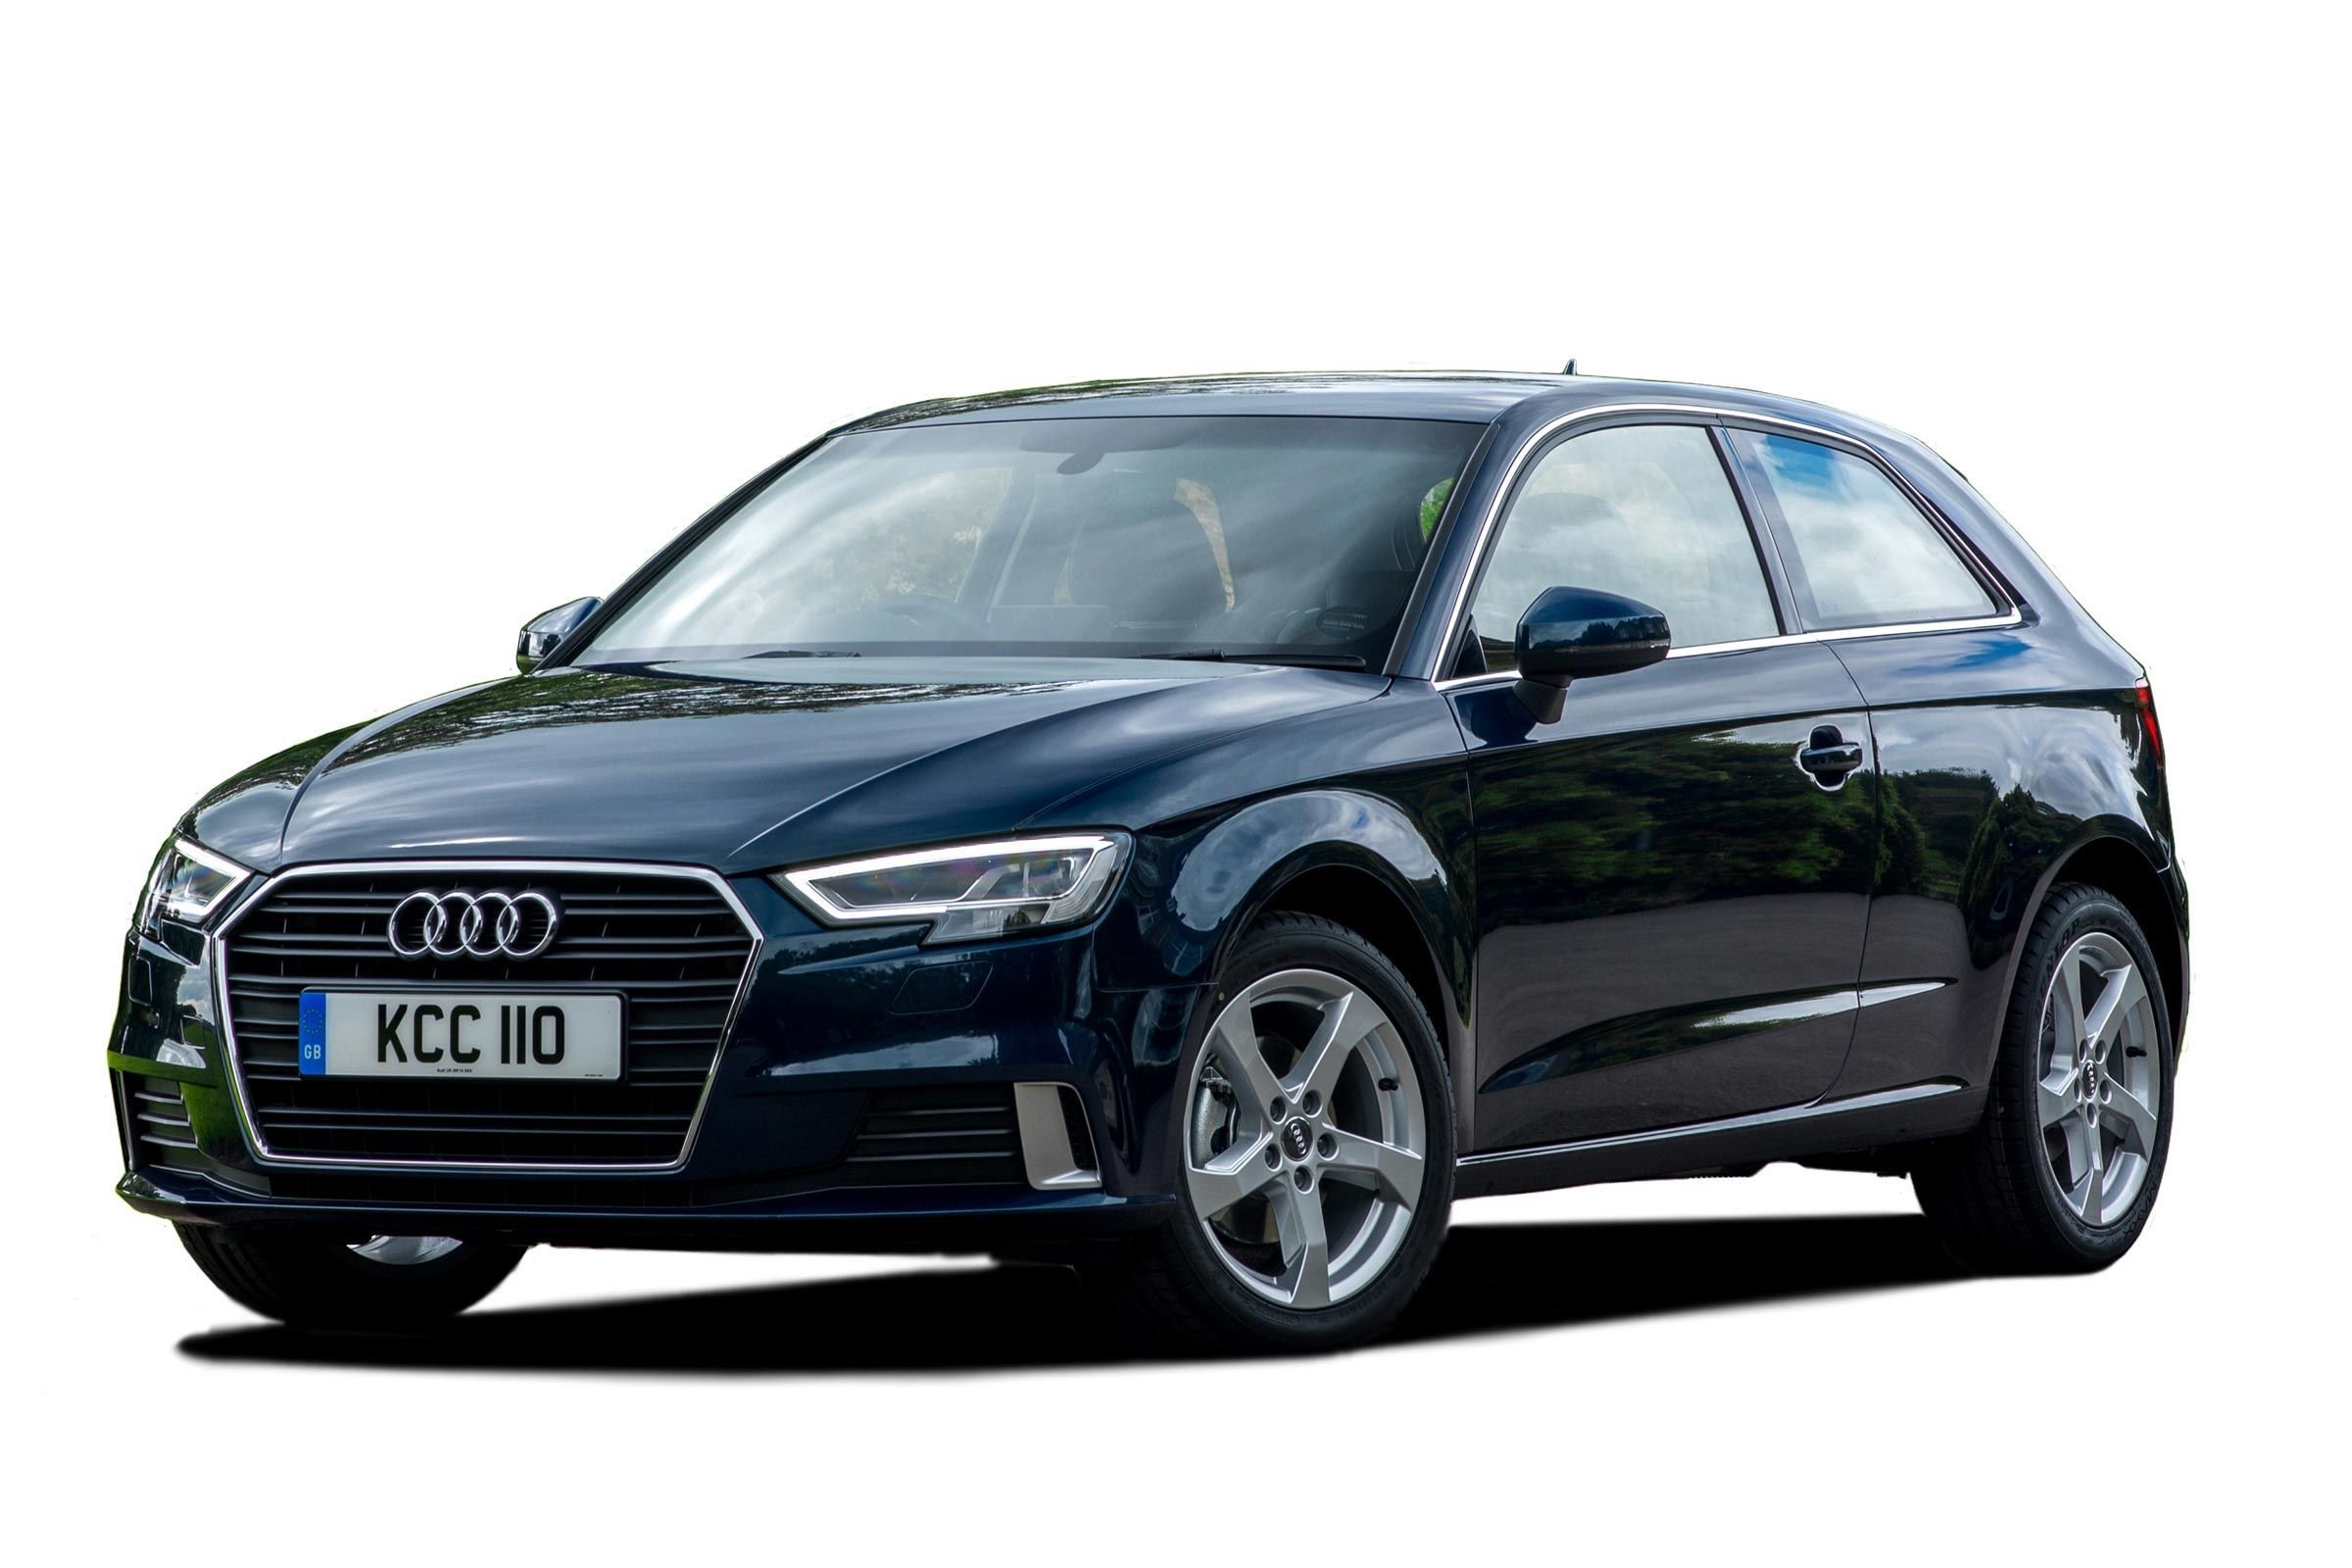 Latest 2017 Audi Q2 Review Caradvice 2018 Cars Reviews Price Car Free Download